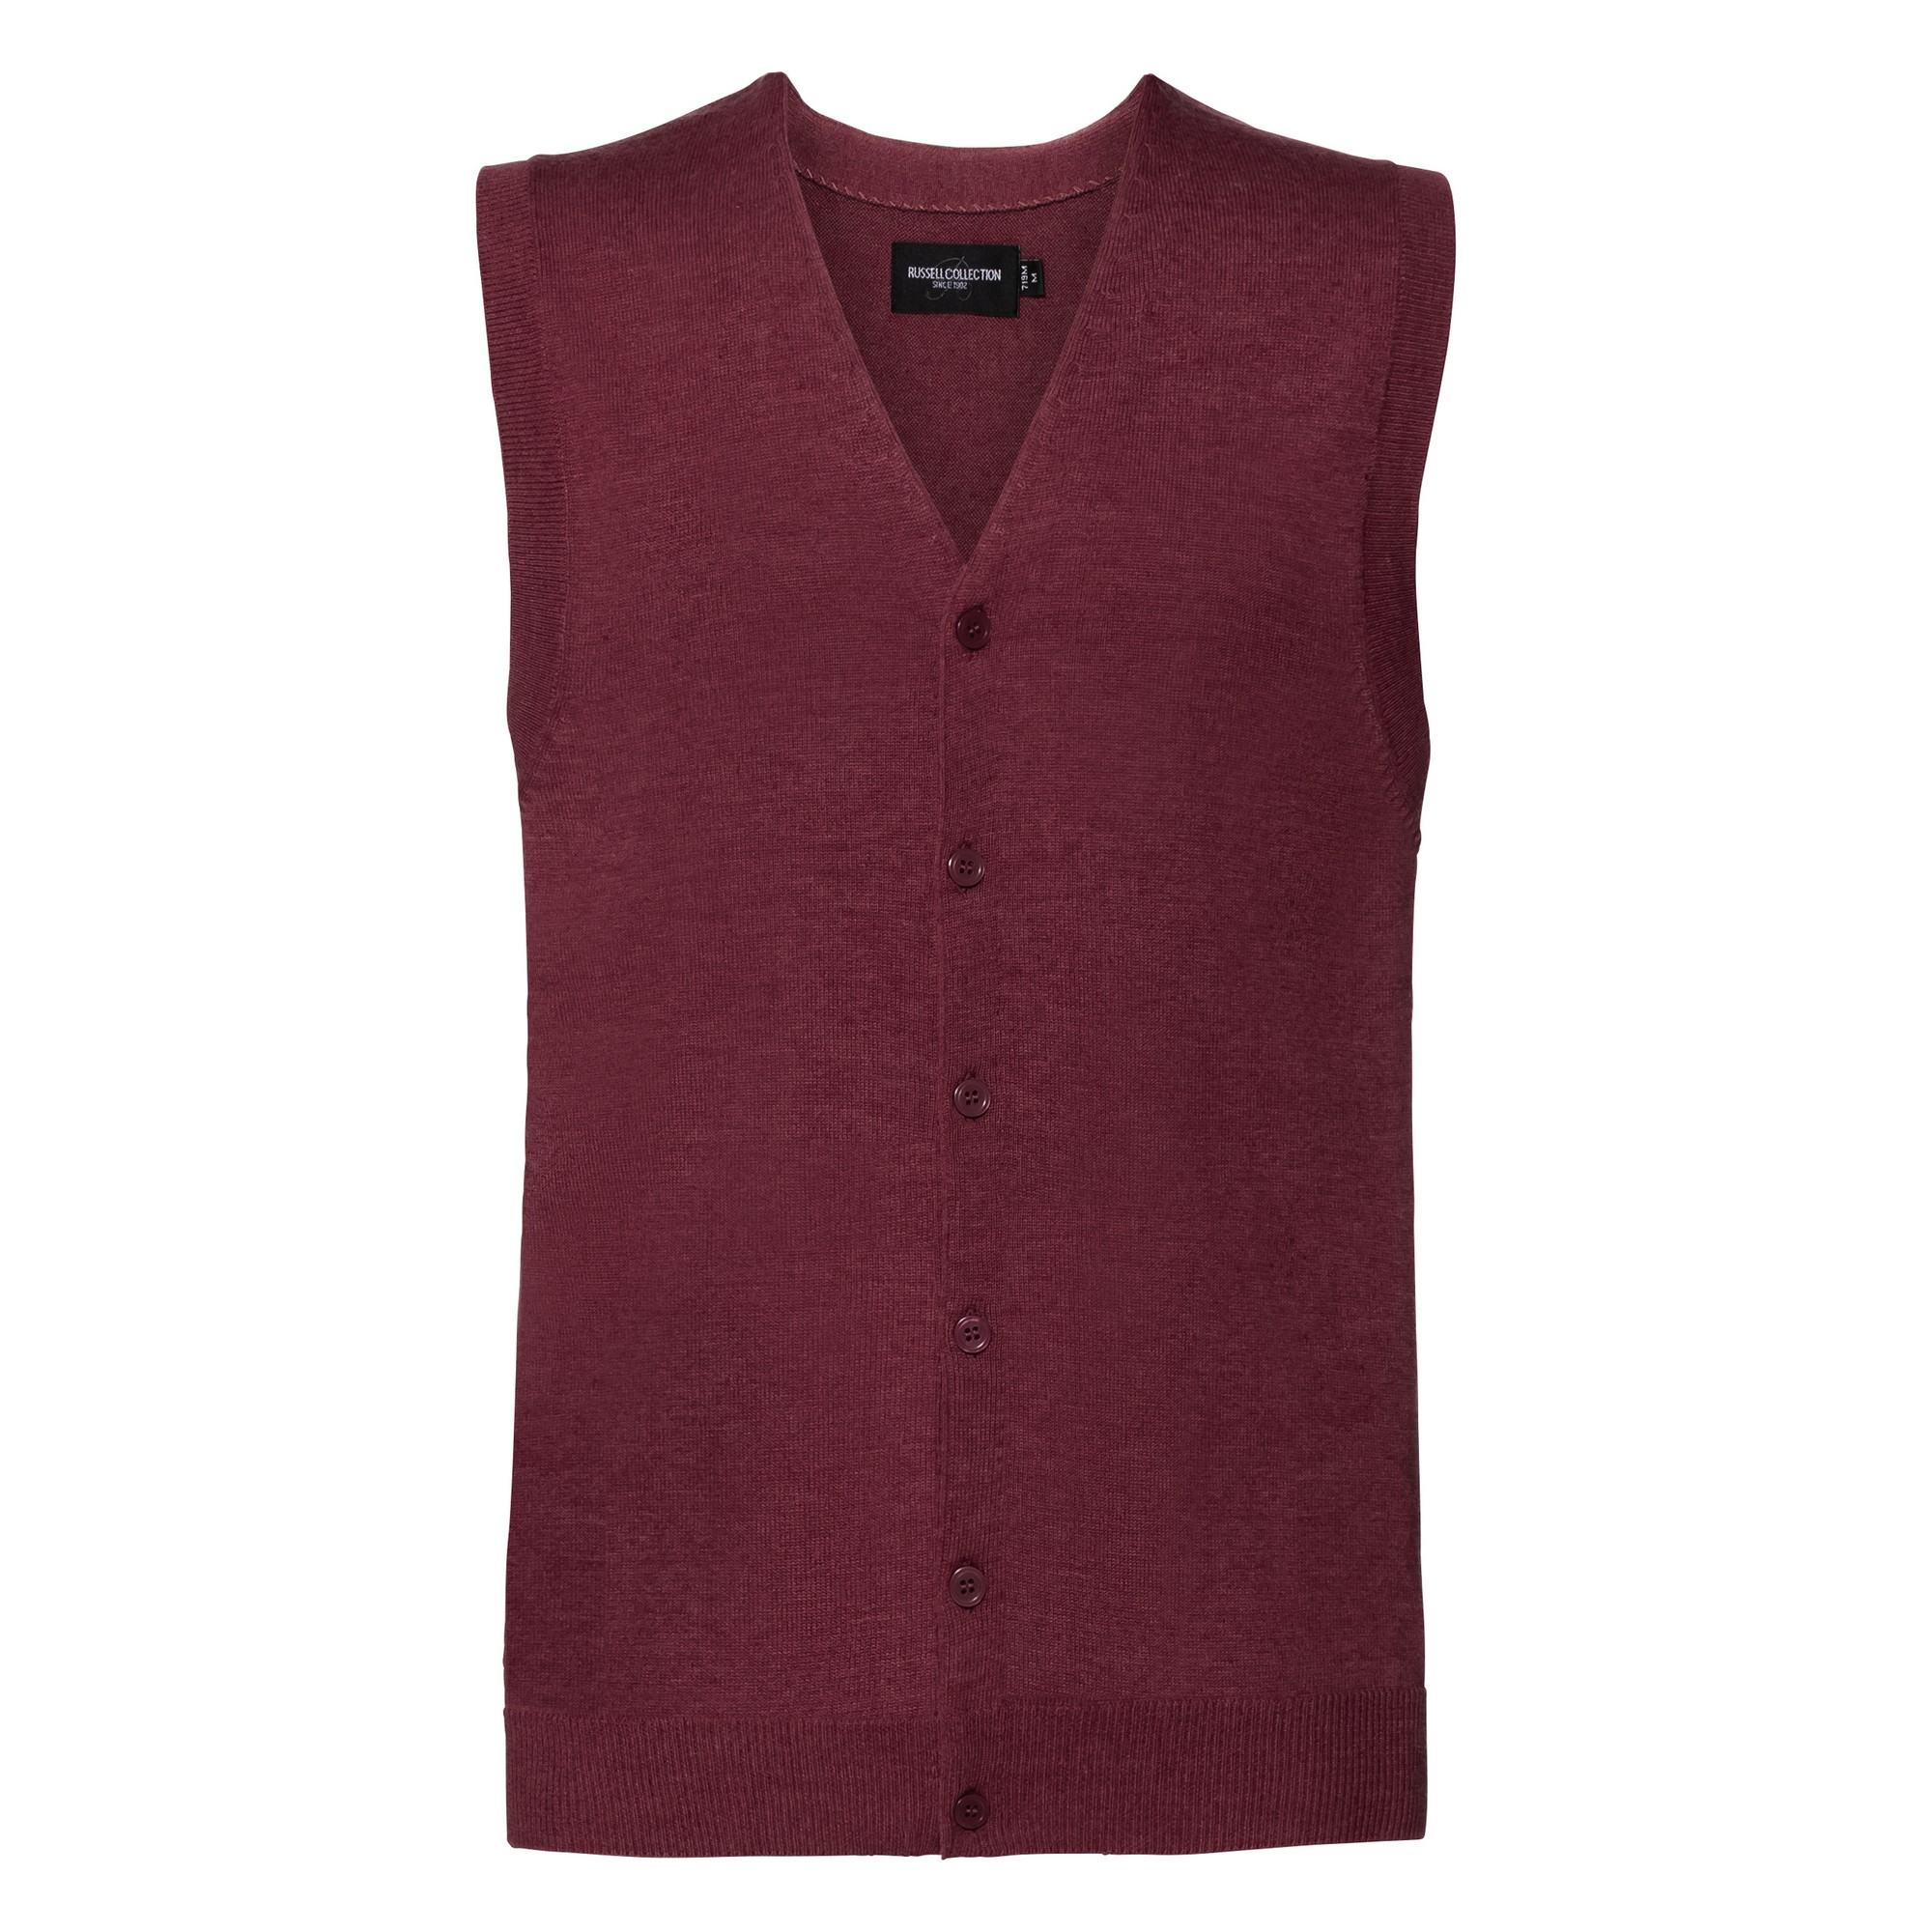 Russell Collection Mens V-neck Sleeveless Knitted Cardigan (S) (Cranberry Marl)